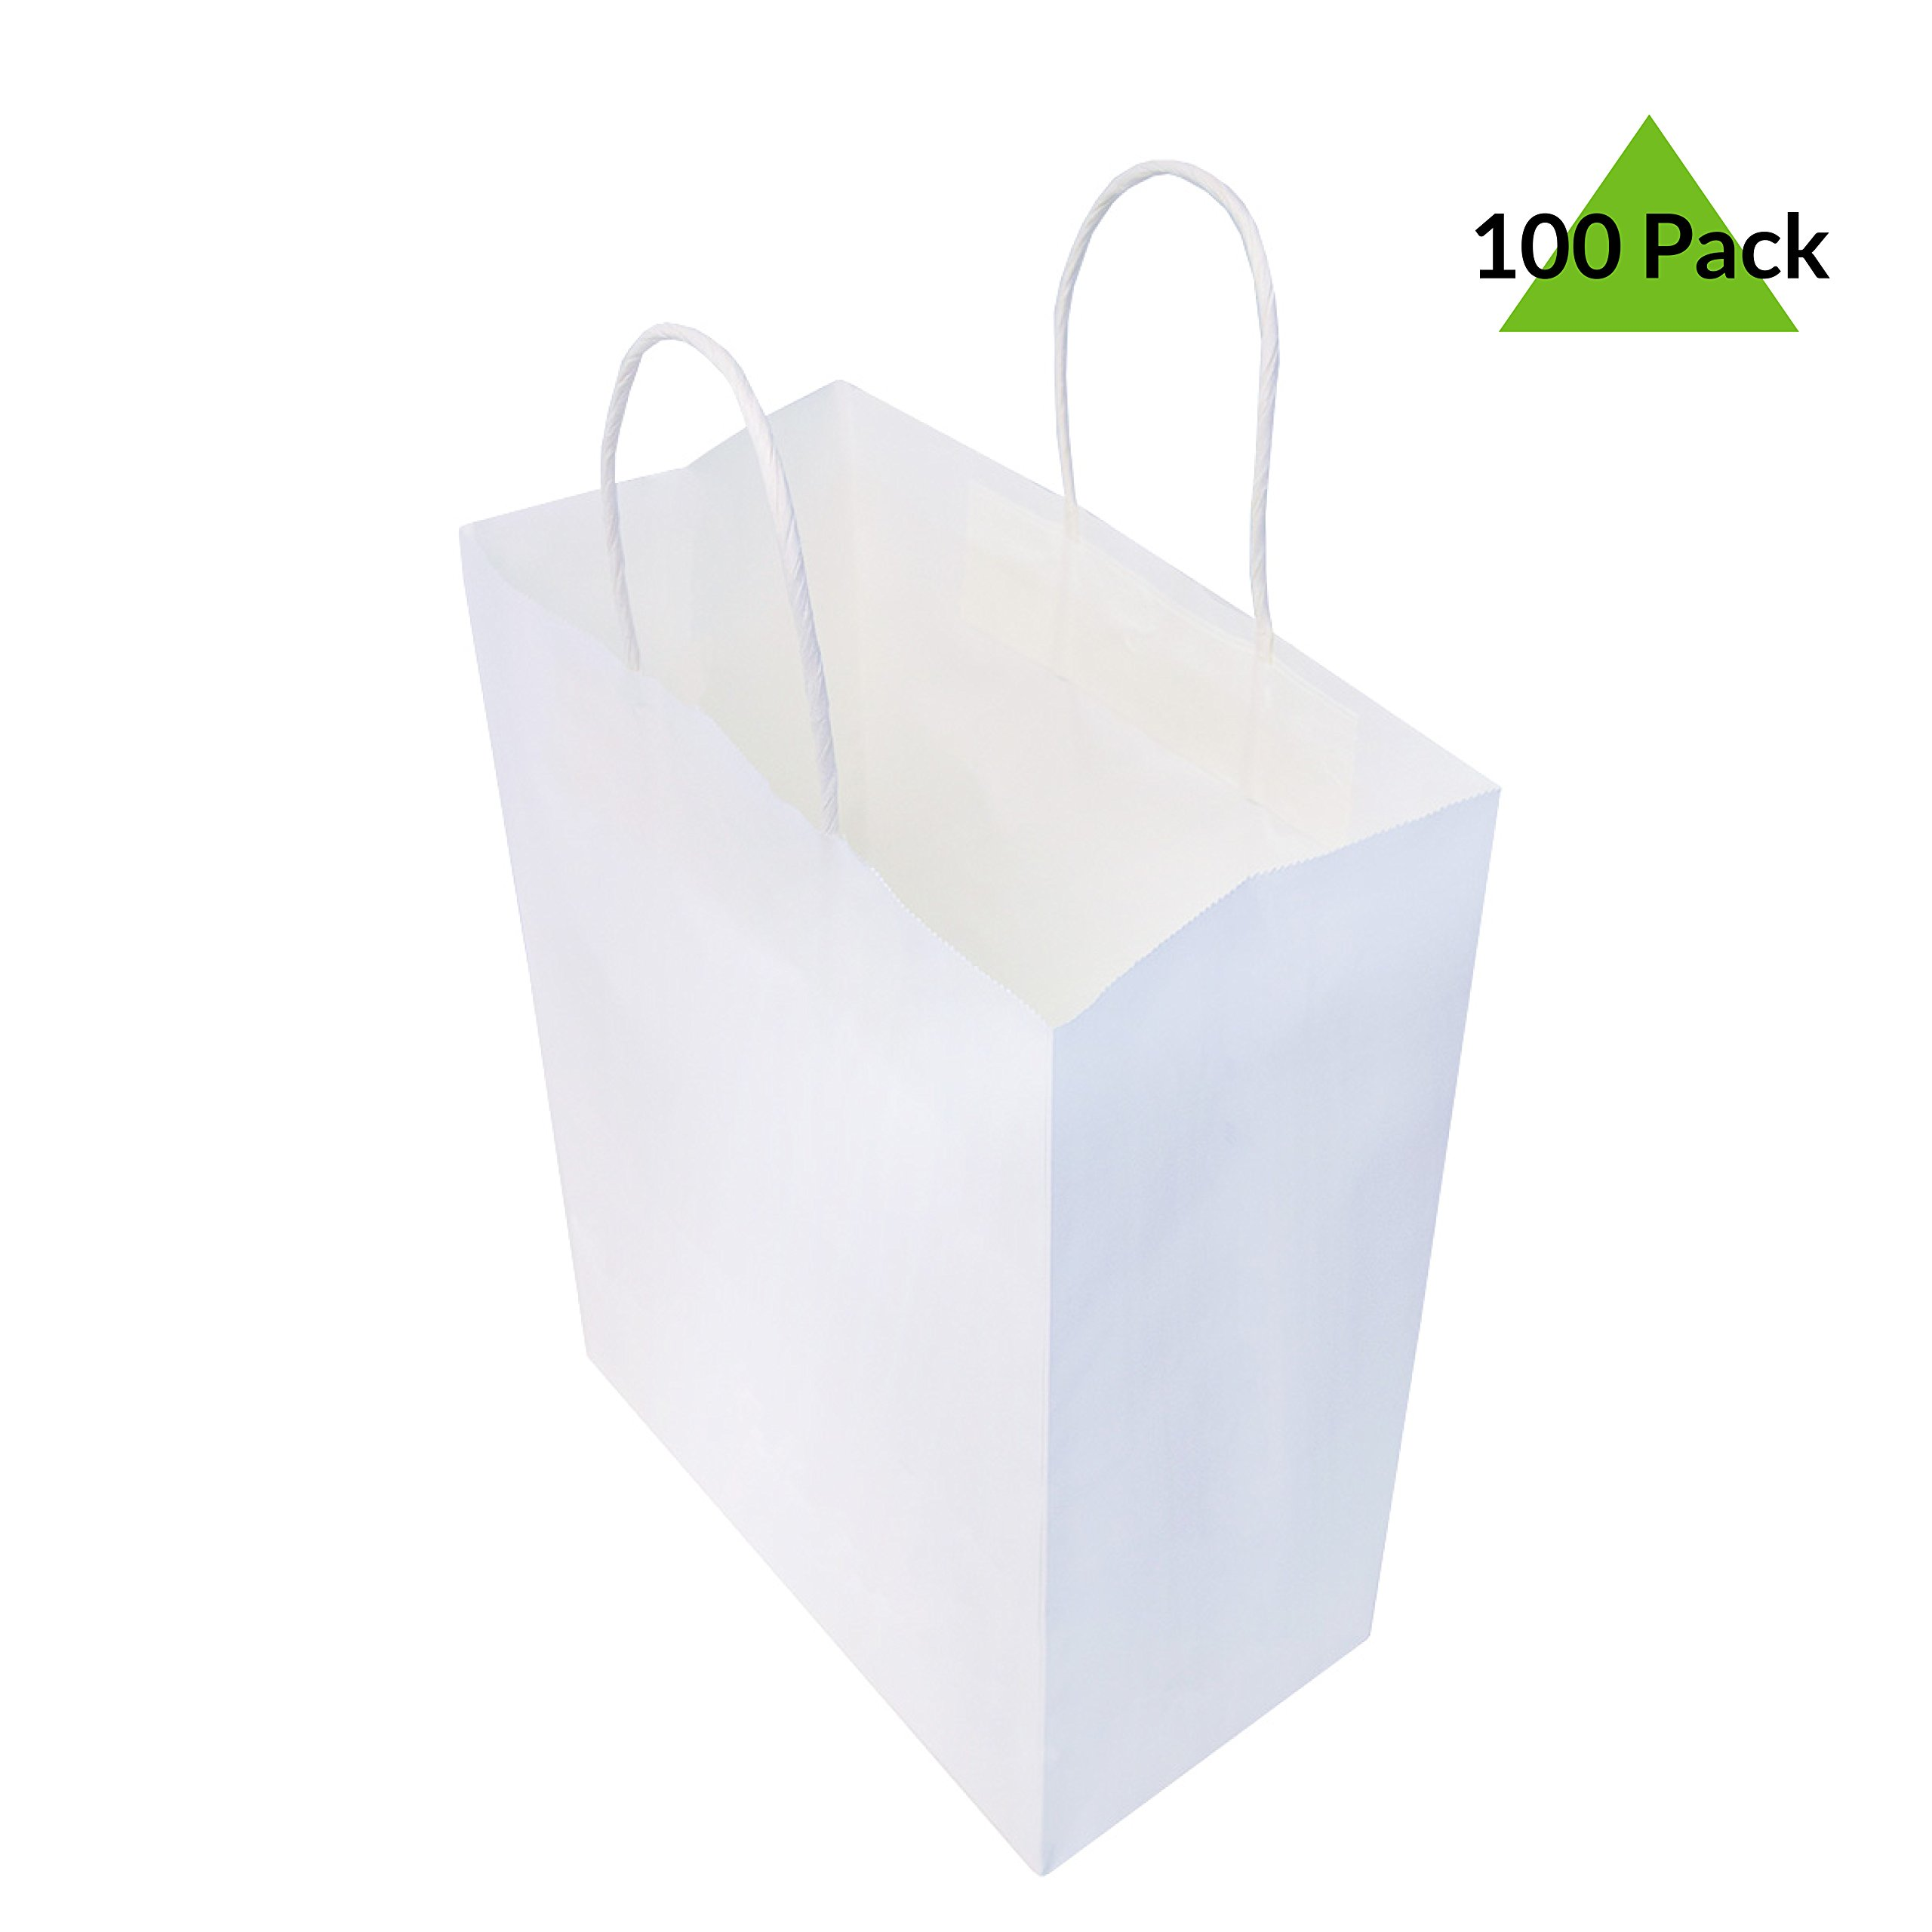 8x4x10'' Pack Of 100 White Kraft Paper Gift Bags With Handles, Shopping Bags, Merchandise Retail Bags, Party Favor Bags